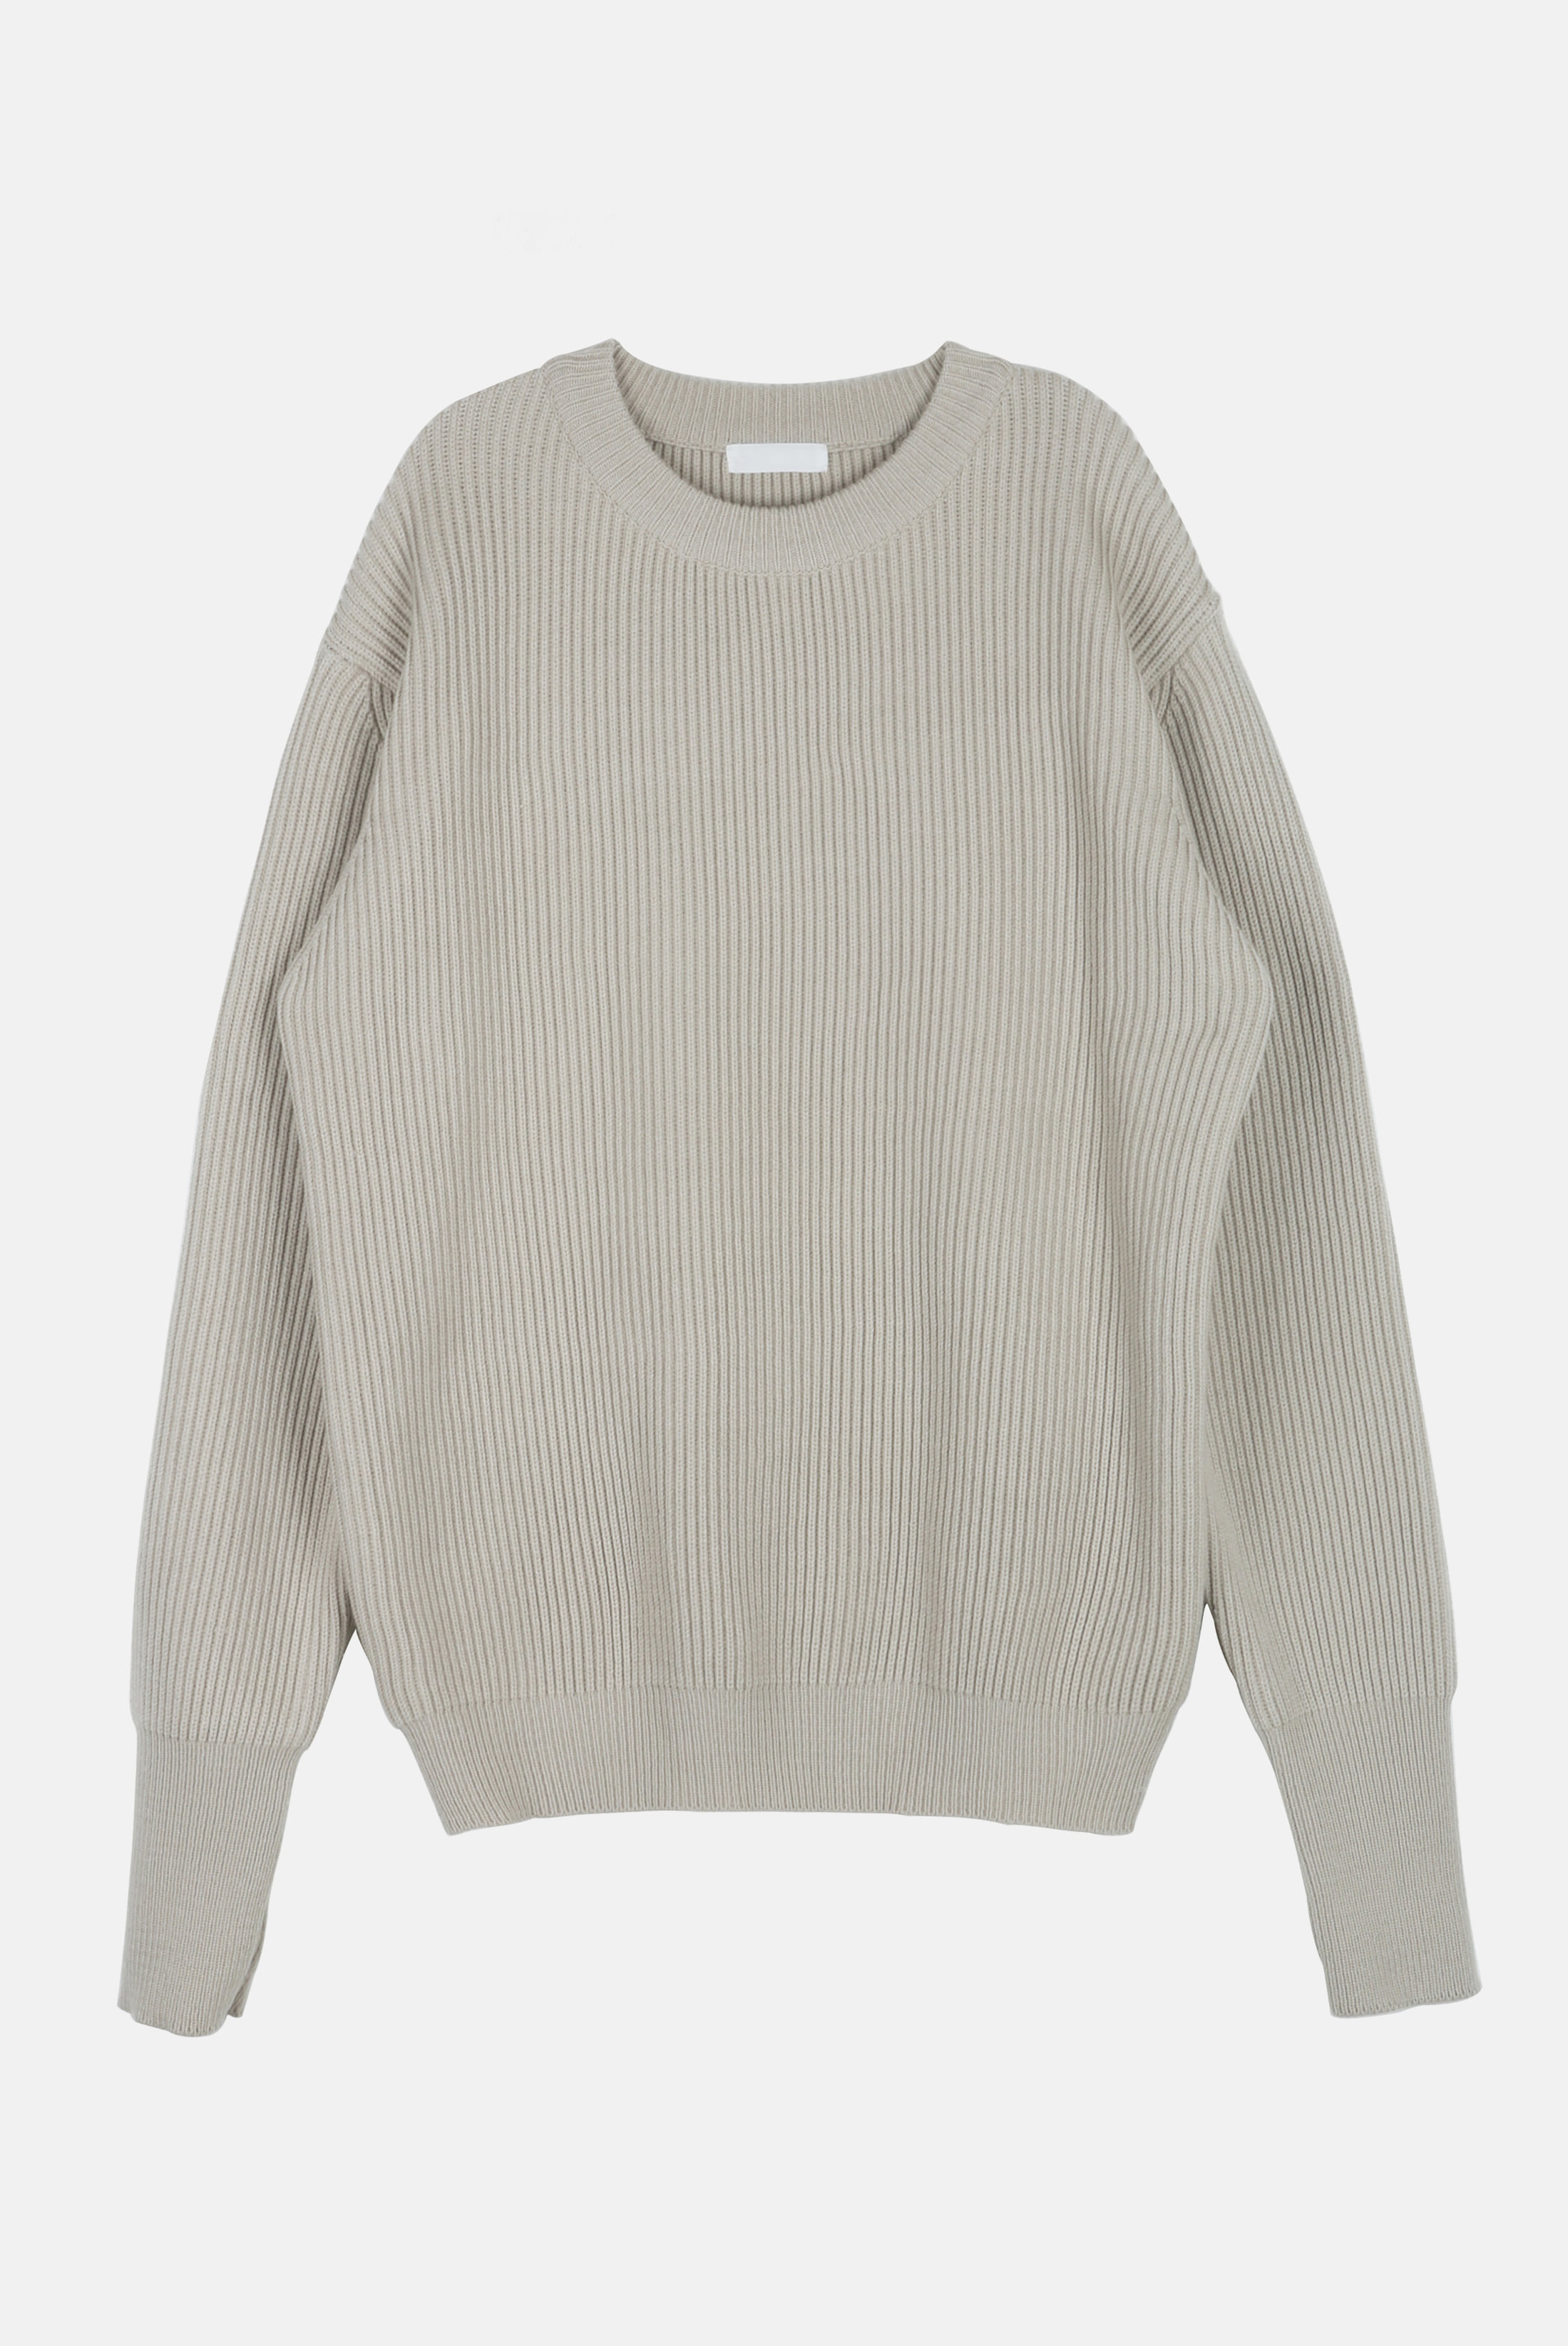 Heavy_Weight Warmer_Round Knit